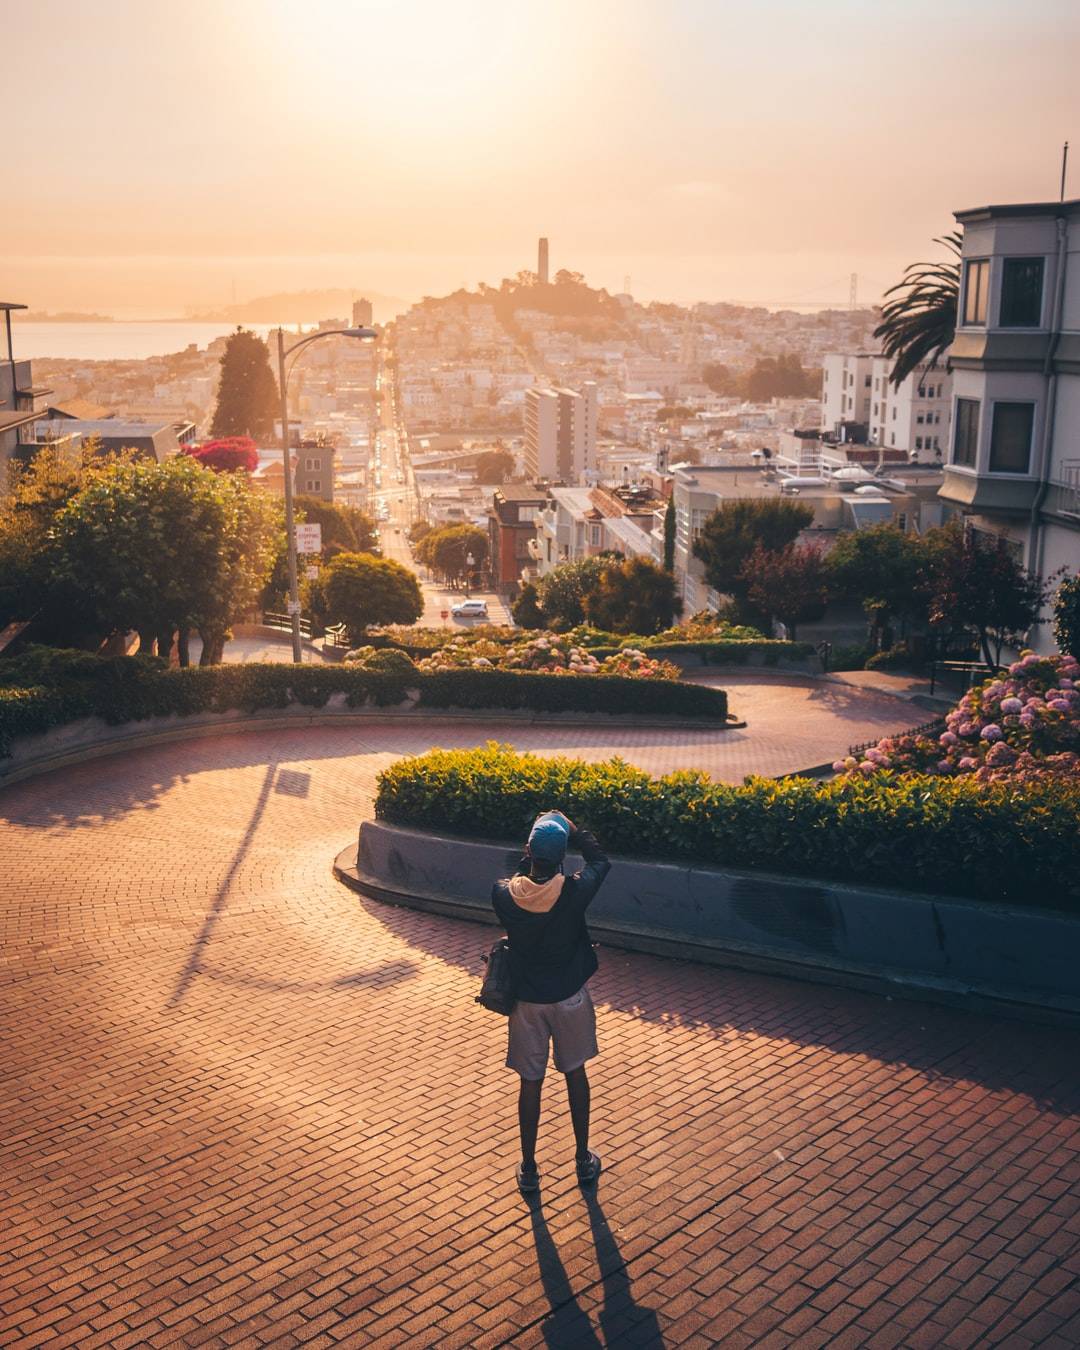 We were driving throughout San Francisco looking for the perfect place to shoot sunrise and as we got to Lombard Street we saw how empty it was and started taking photos immediately.